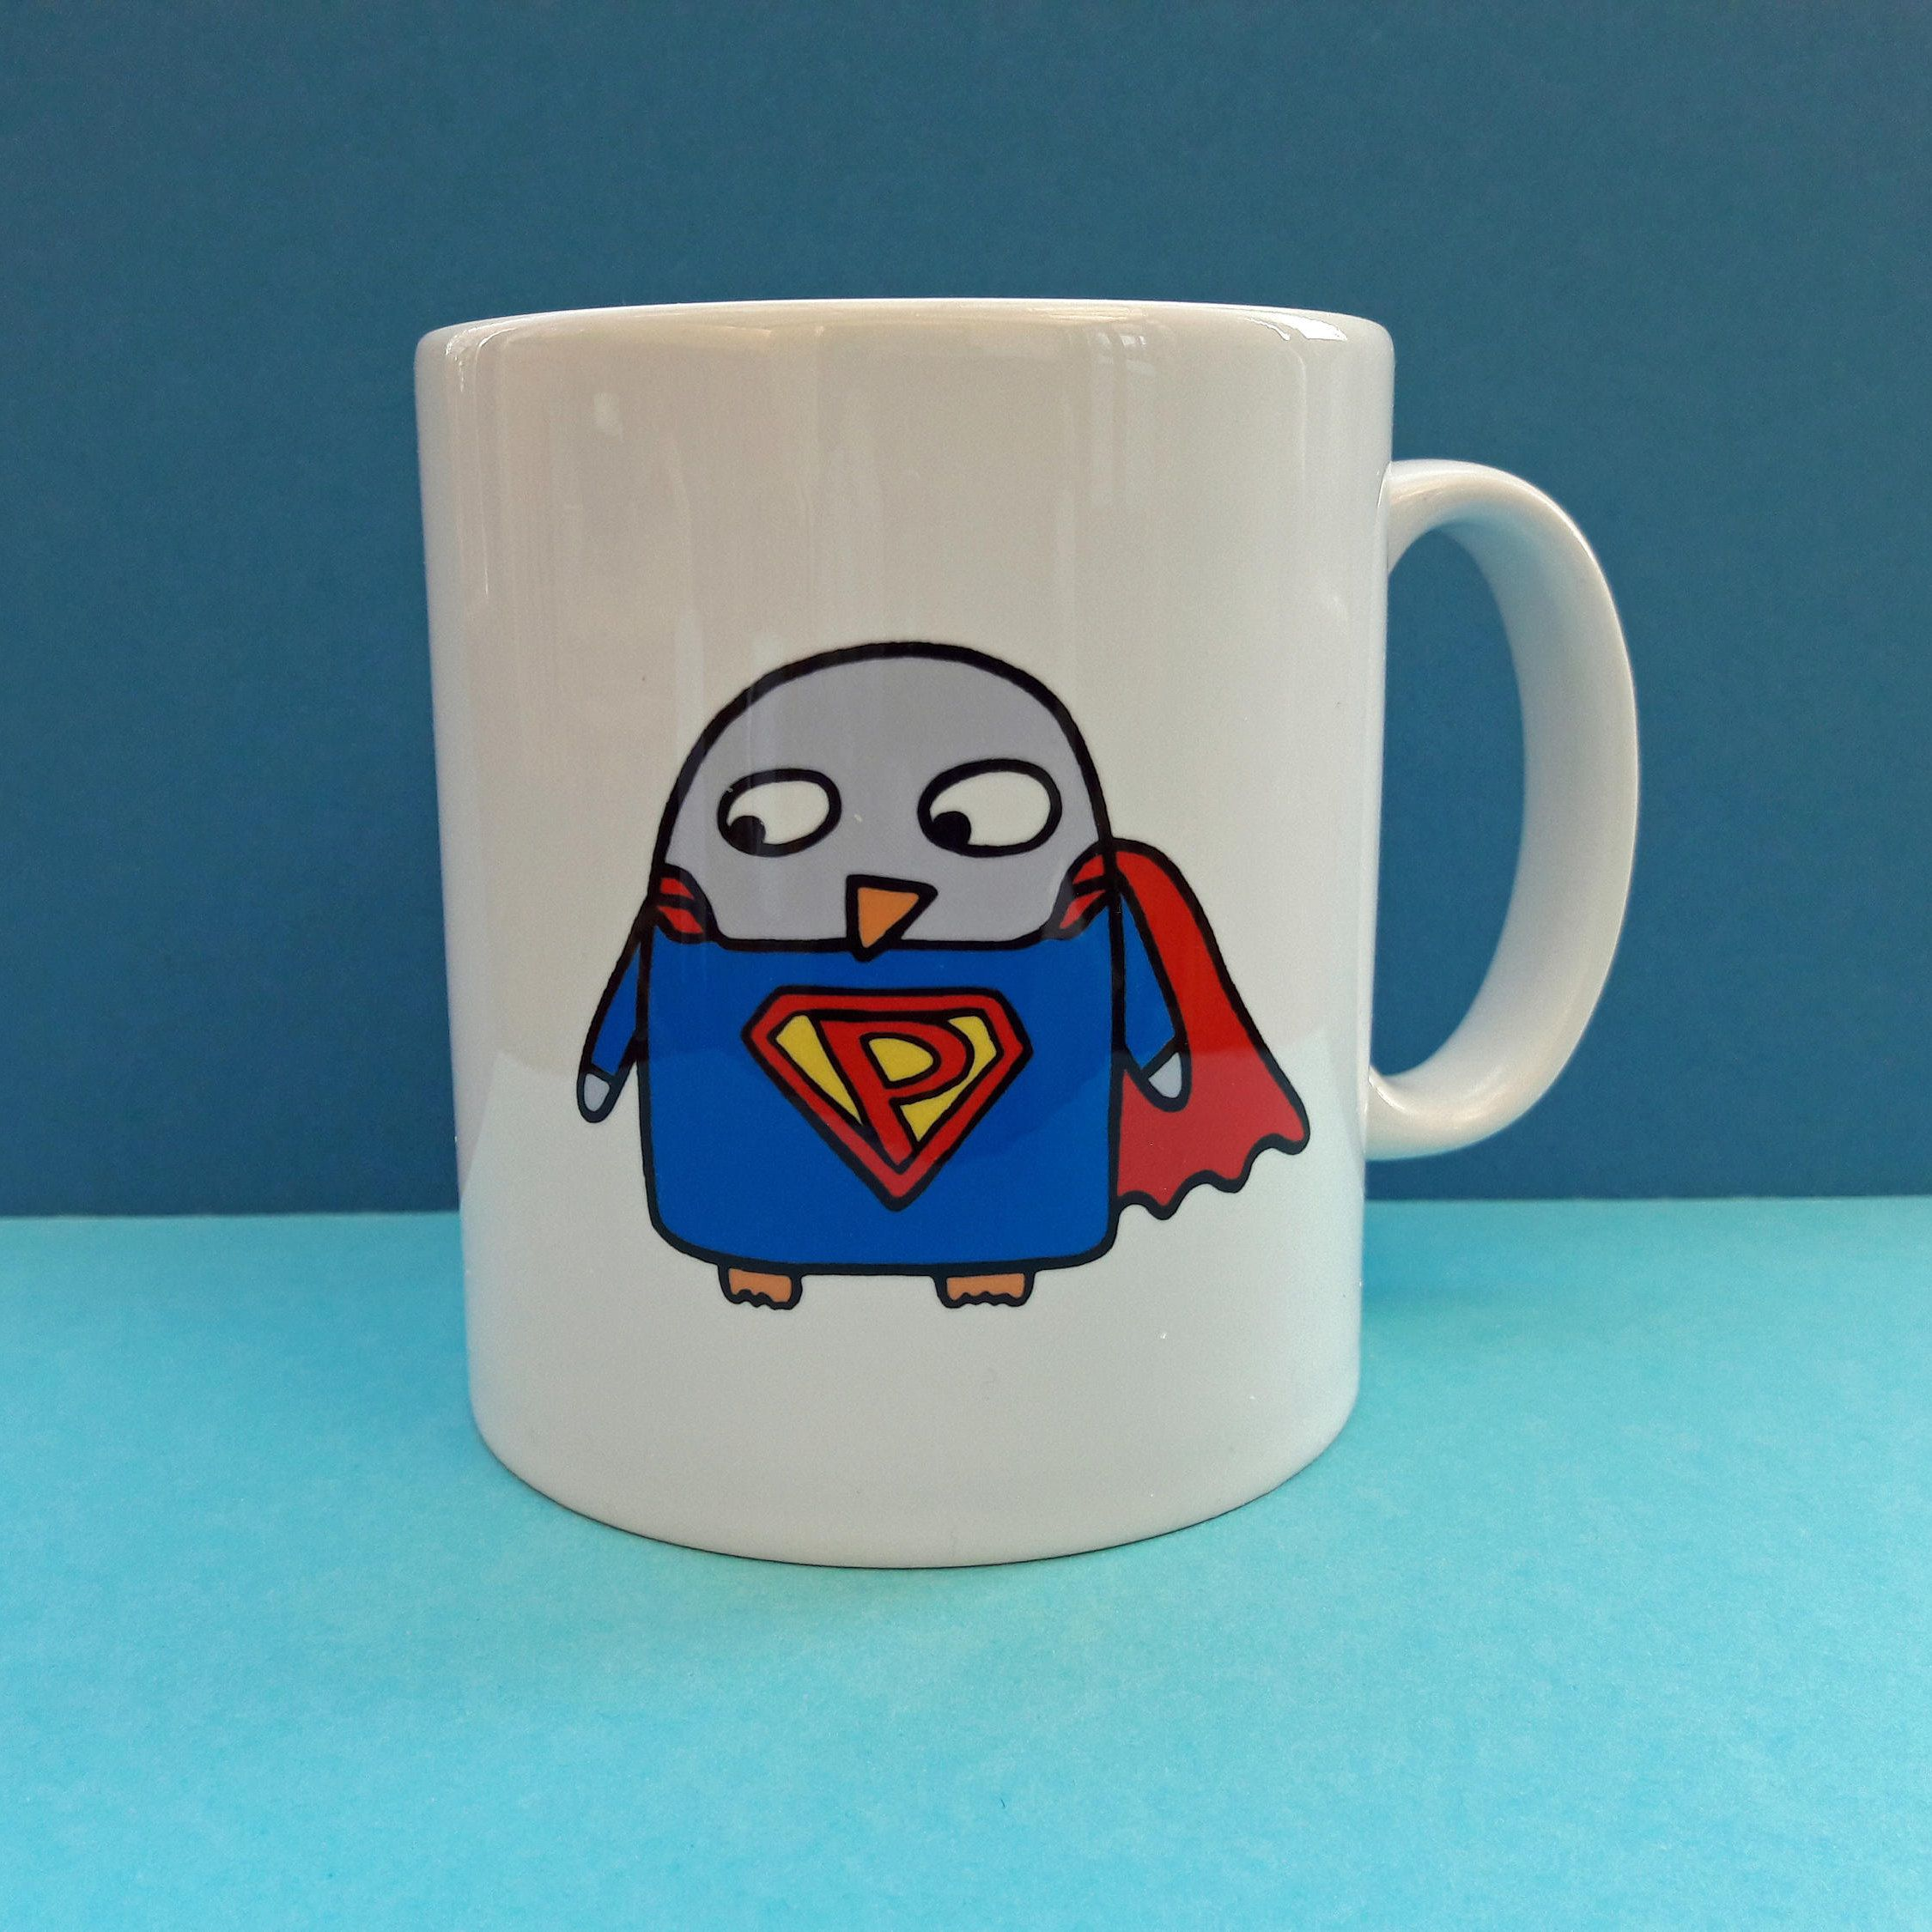 Superhero Mug - Funny penguin gift - Superhero gift - Superpenguin - Boyfriend - Son - Husband - Dad - birthday - boy #superherogifts